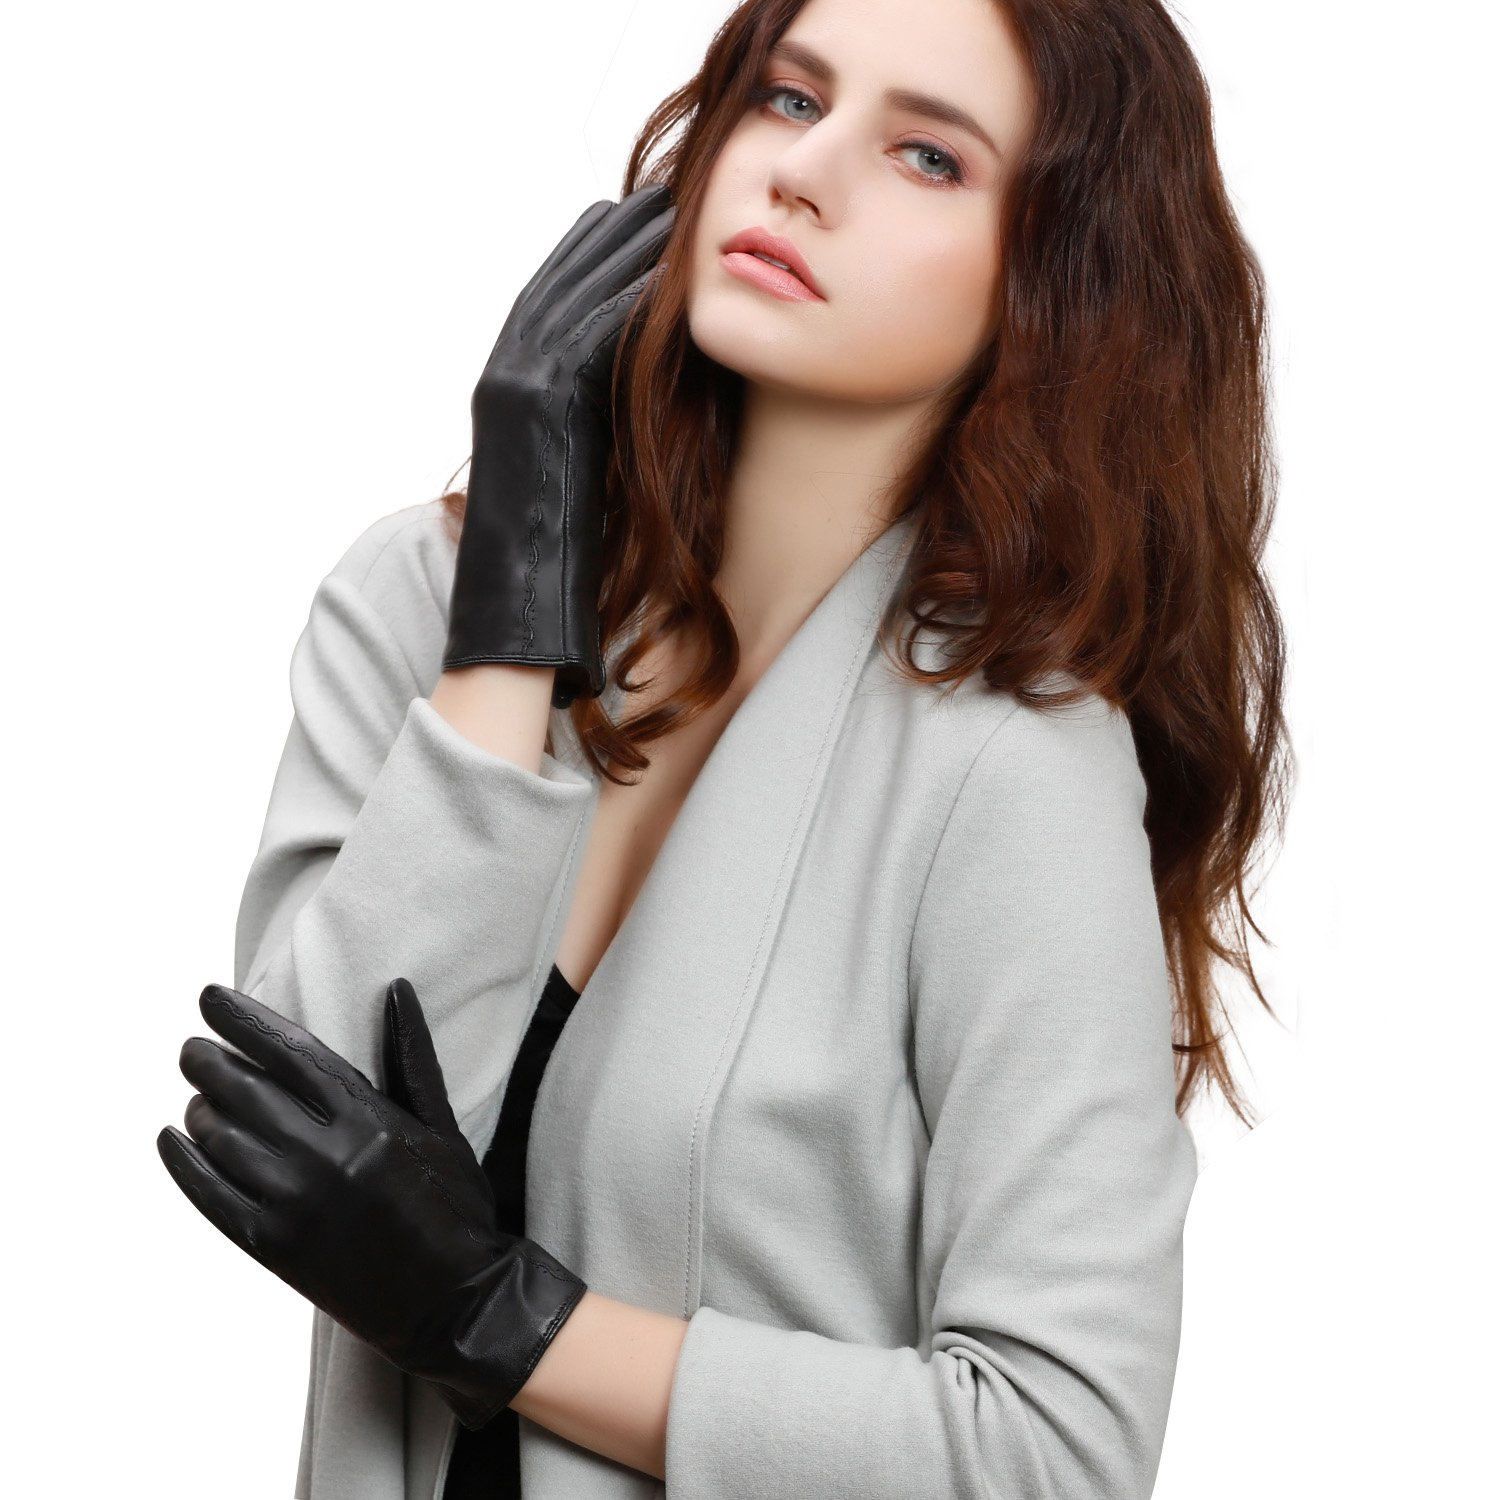 GSG Womens Stylish Italian Full Palm Touchscreen Gloves Genuine Nappa Leather Driving Gloves Wool Winter Nice Gifts M